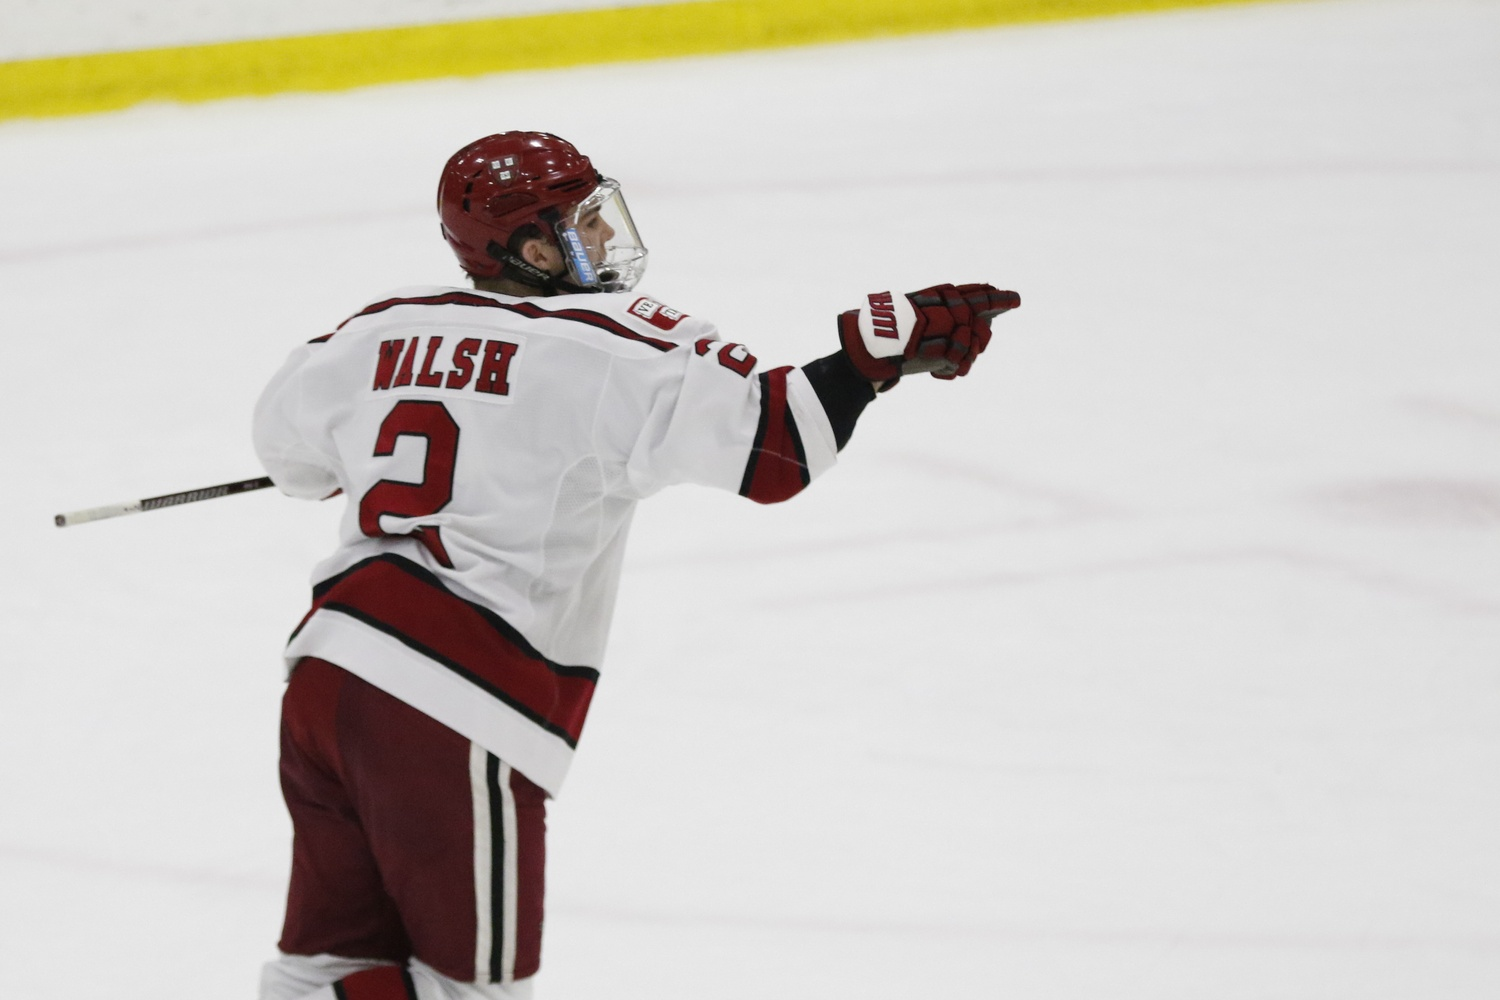 Reilly Walsh's overtime tally snapped a nine-game goalless streak for the offensive-minded defenseman.